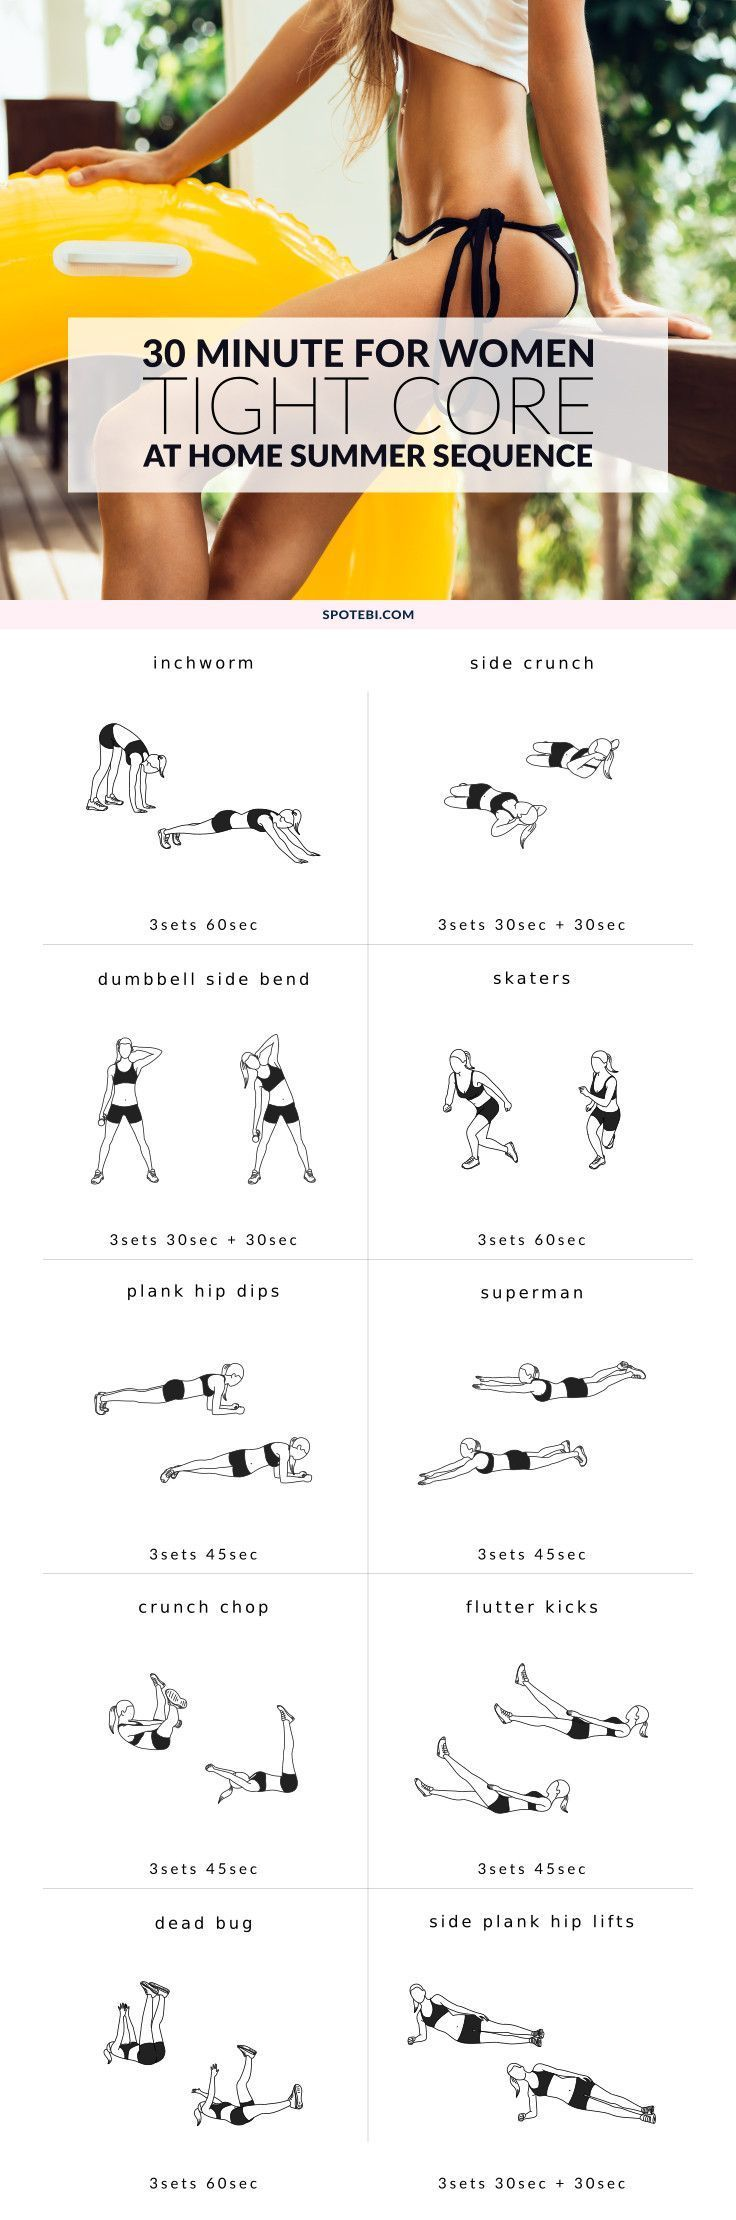 To get a toned belly and a small waist, women need to target all layers of muscles and hit the midsection from different angles. This Tight Core Summer Workout is designed to cinch your waist, strengthen your core and give you a tighter tummy! www.spotebi.com/...